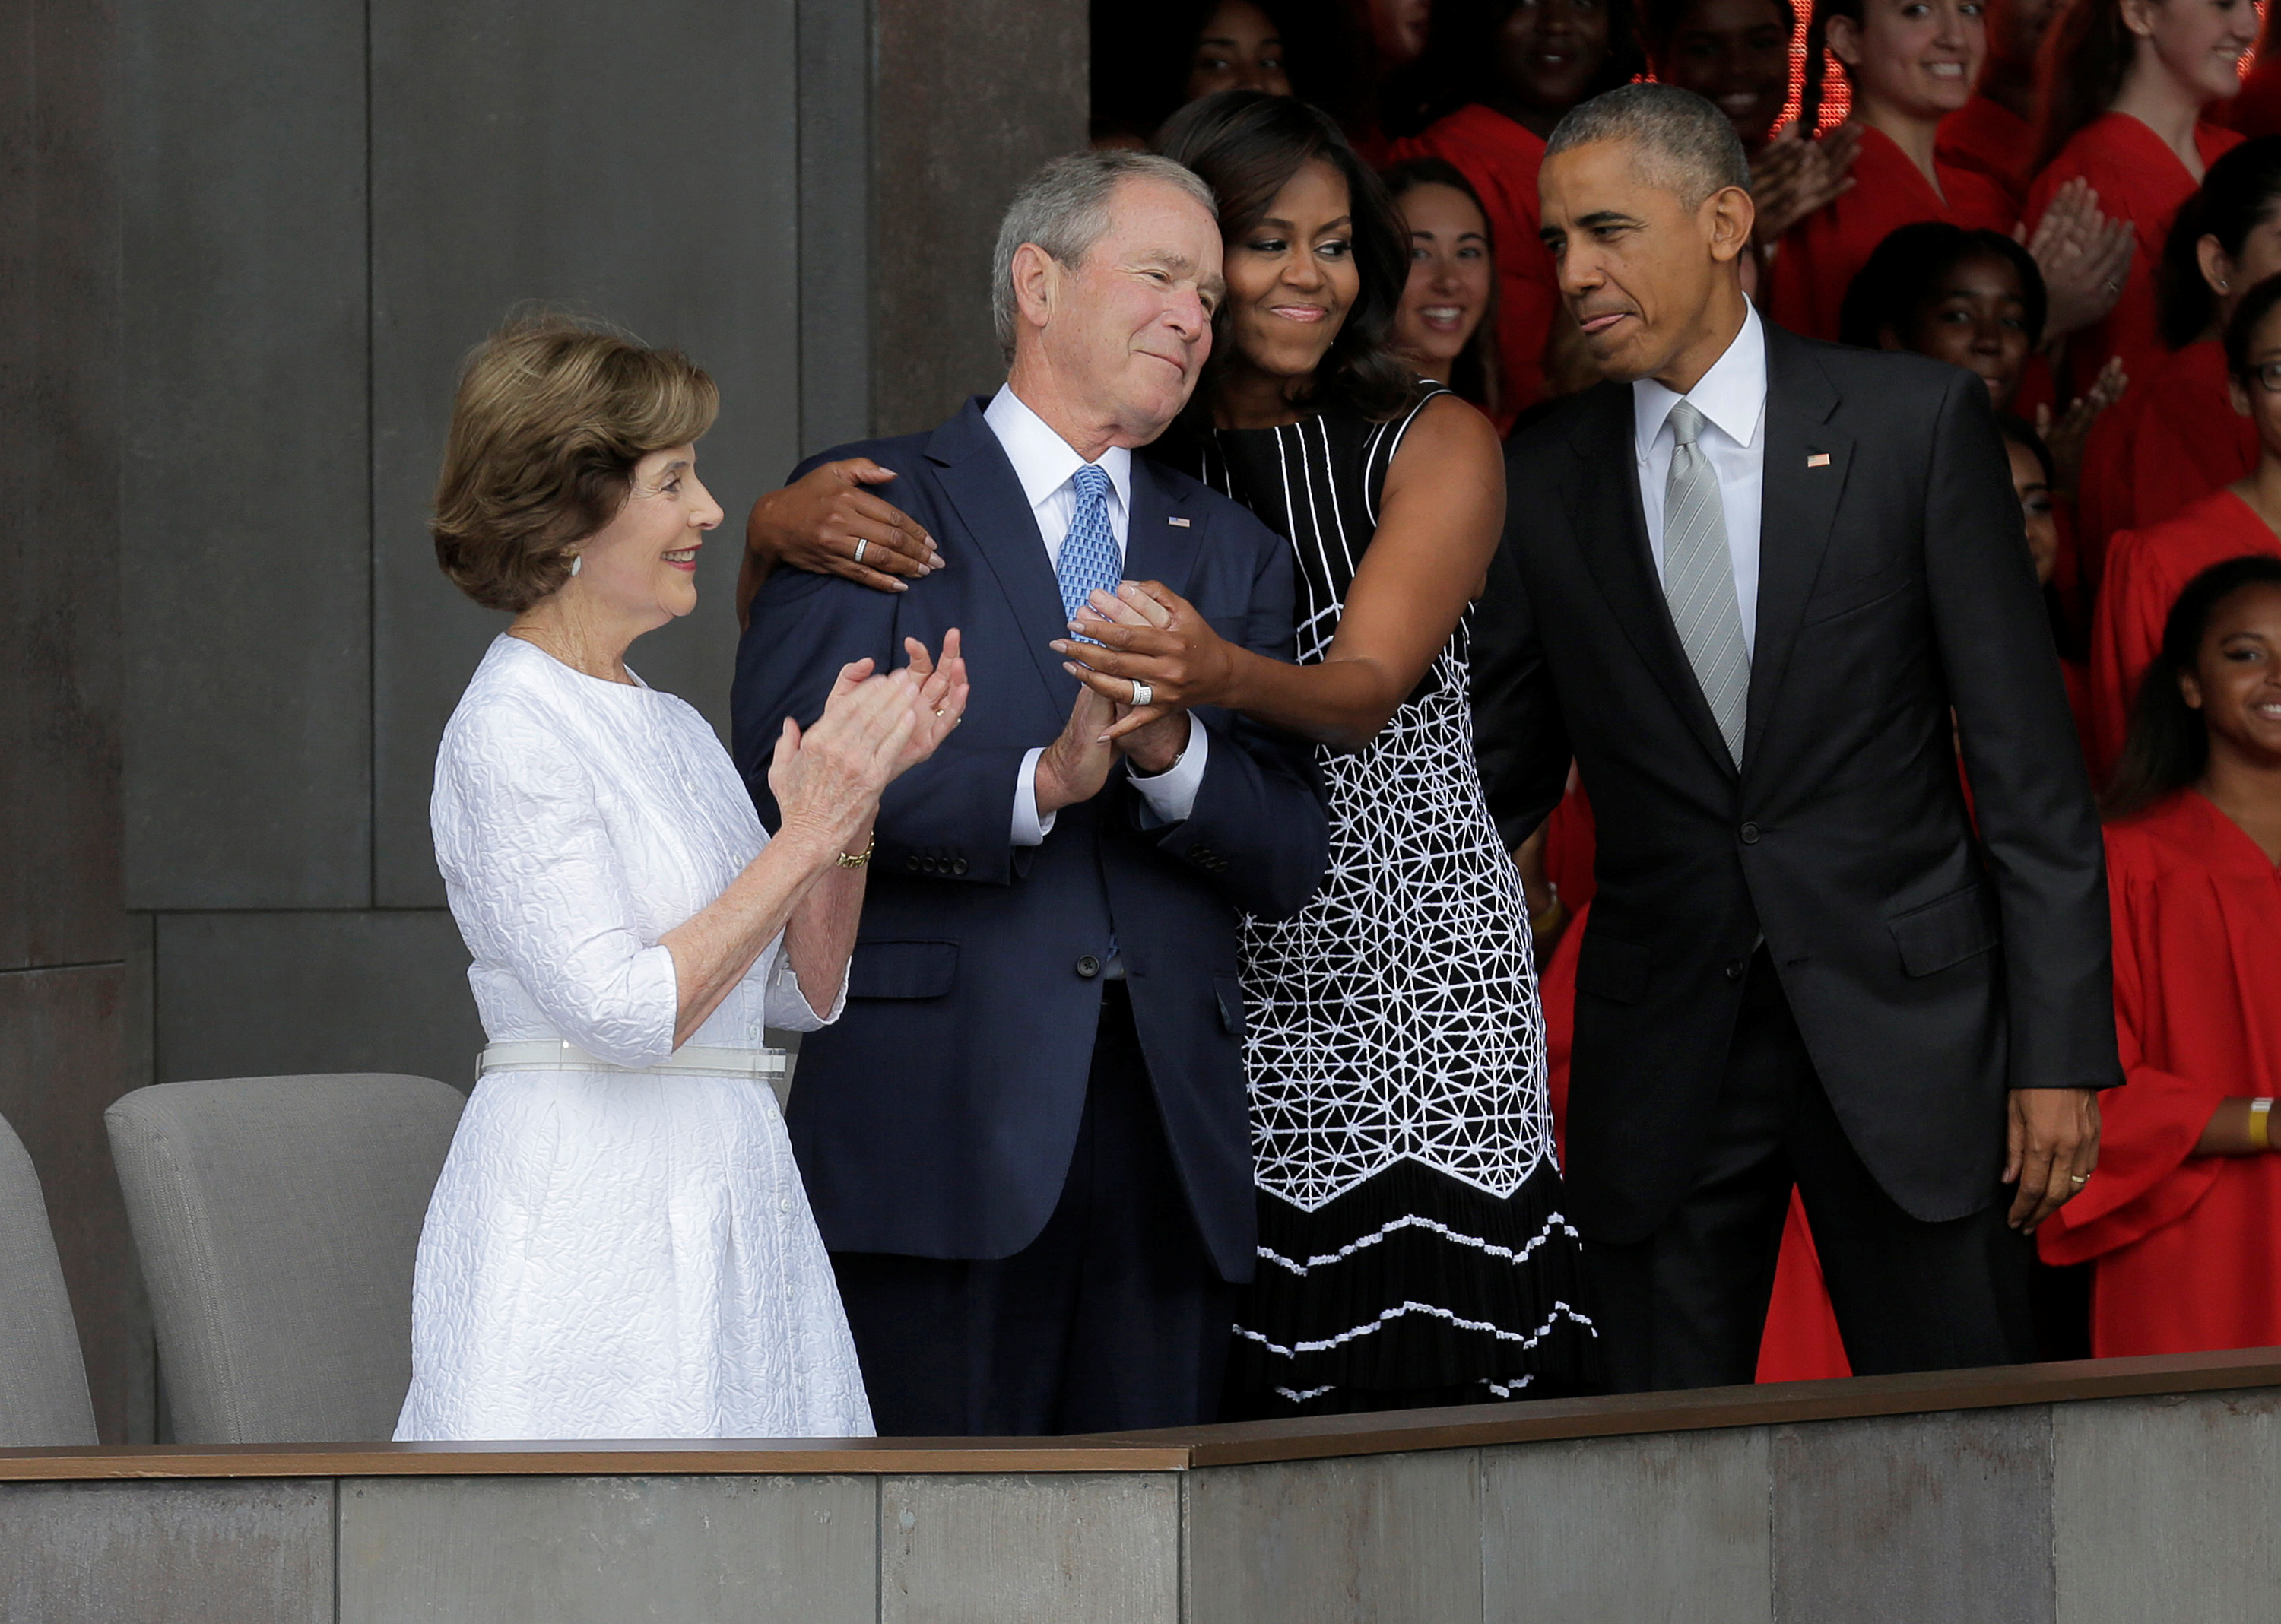 U.S. First Lady Michelle Obama hugs former U.S. President George W. Bush as she arrives for the dedication of the Smithsonian's National Museum of African American History and Culture in Washington